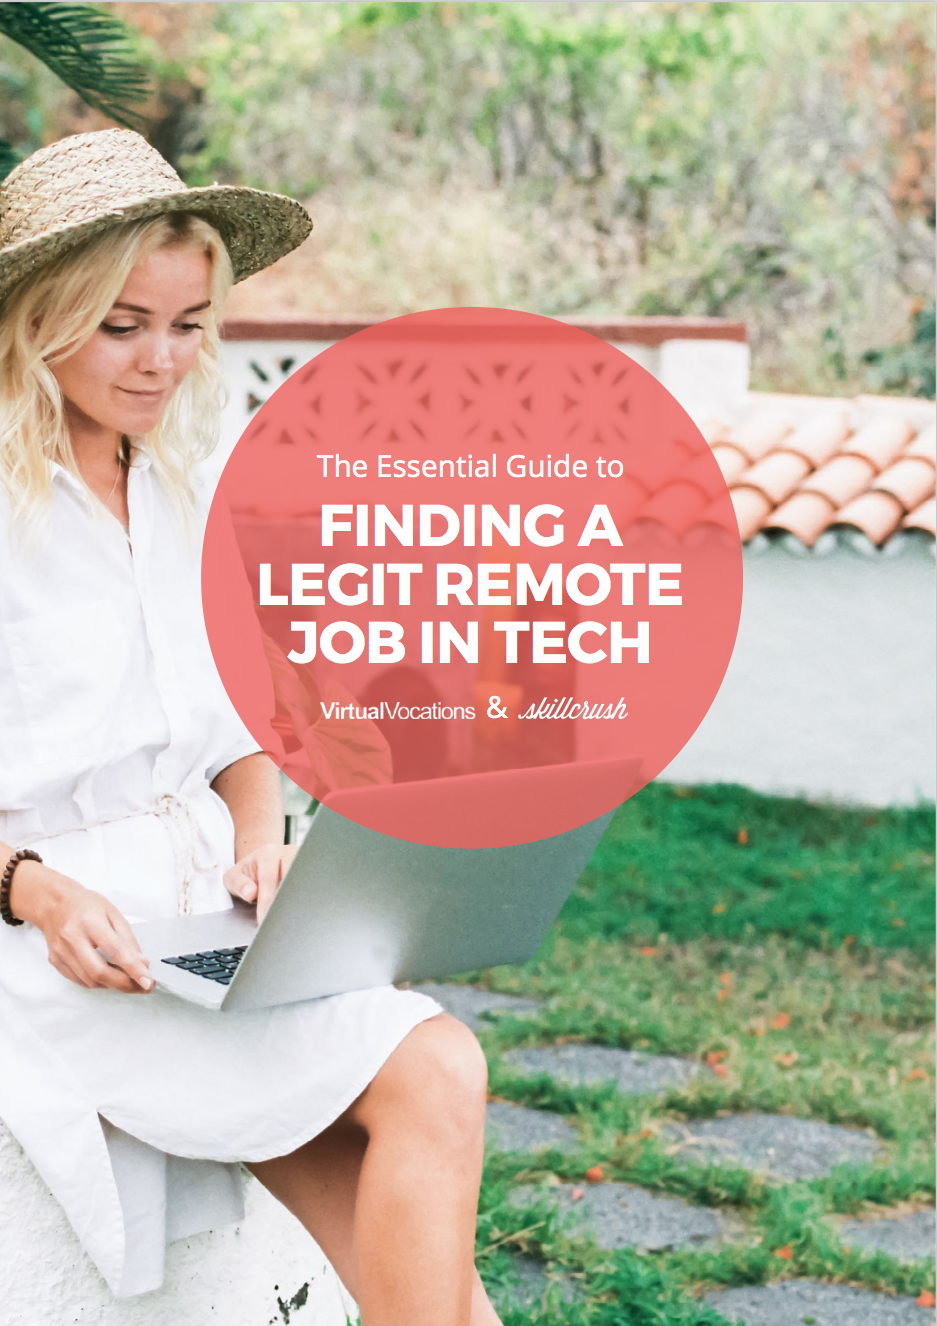 Get Our FREE Essential Guide to Finding a Legit Remote Job in Tech